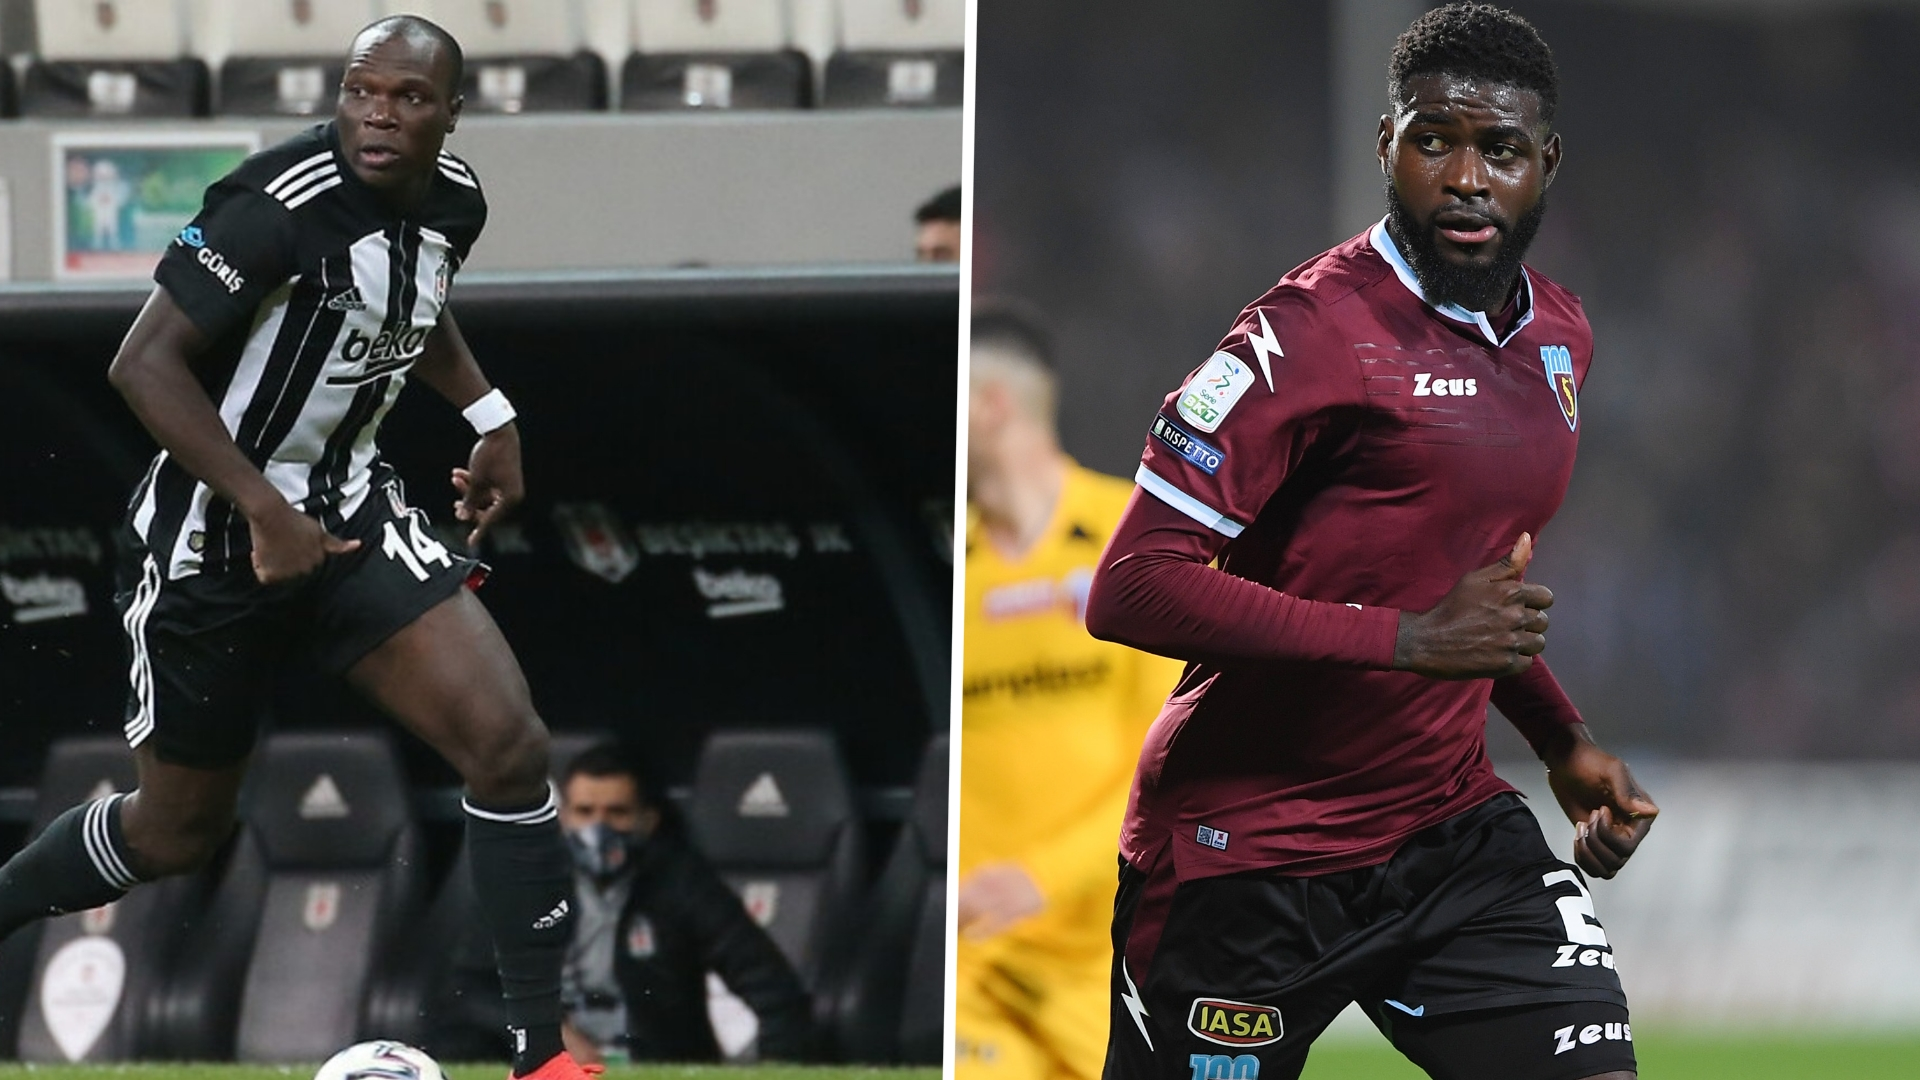 Aboubakar and Billong: Fecafoot and Cameroon coach Conceicao dismiss Super Lig match-fixing allegations